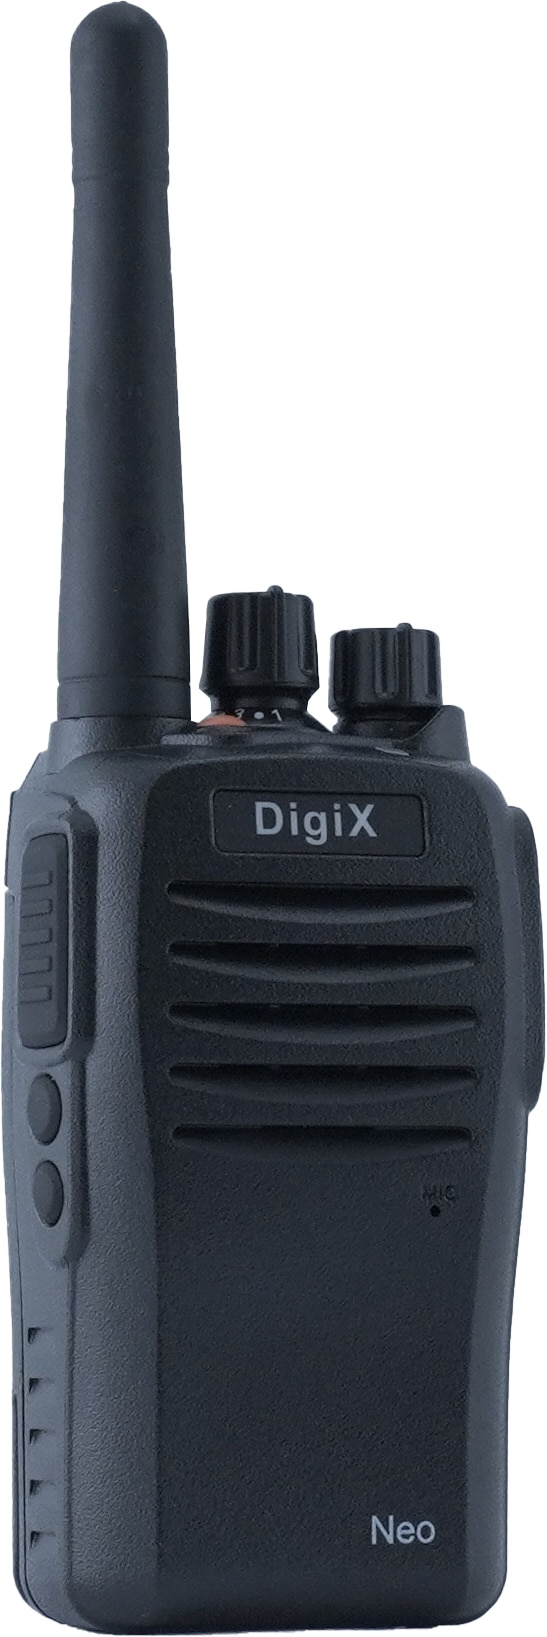 DigiX Neo Front